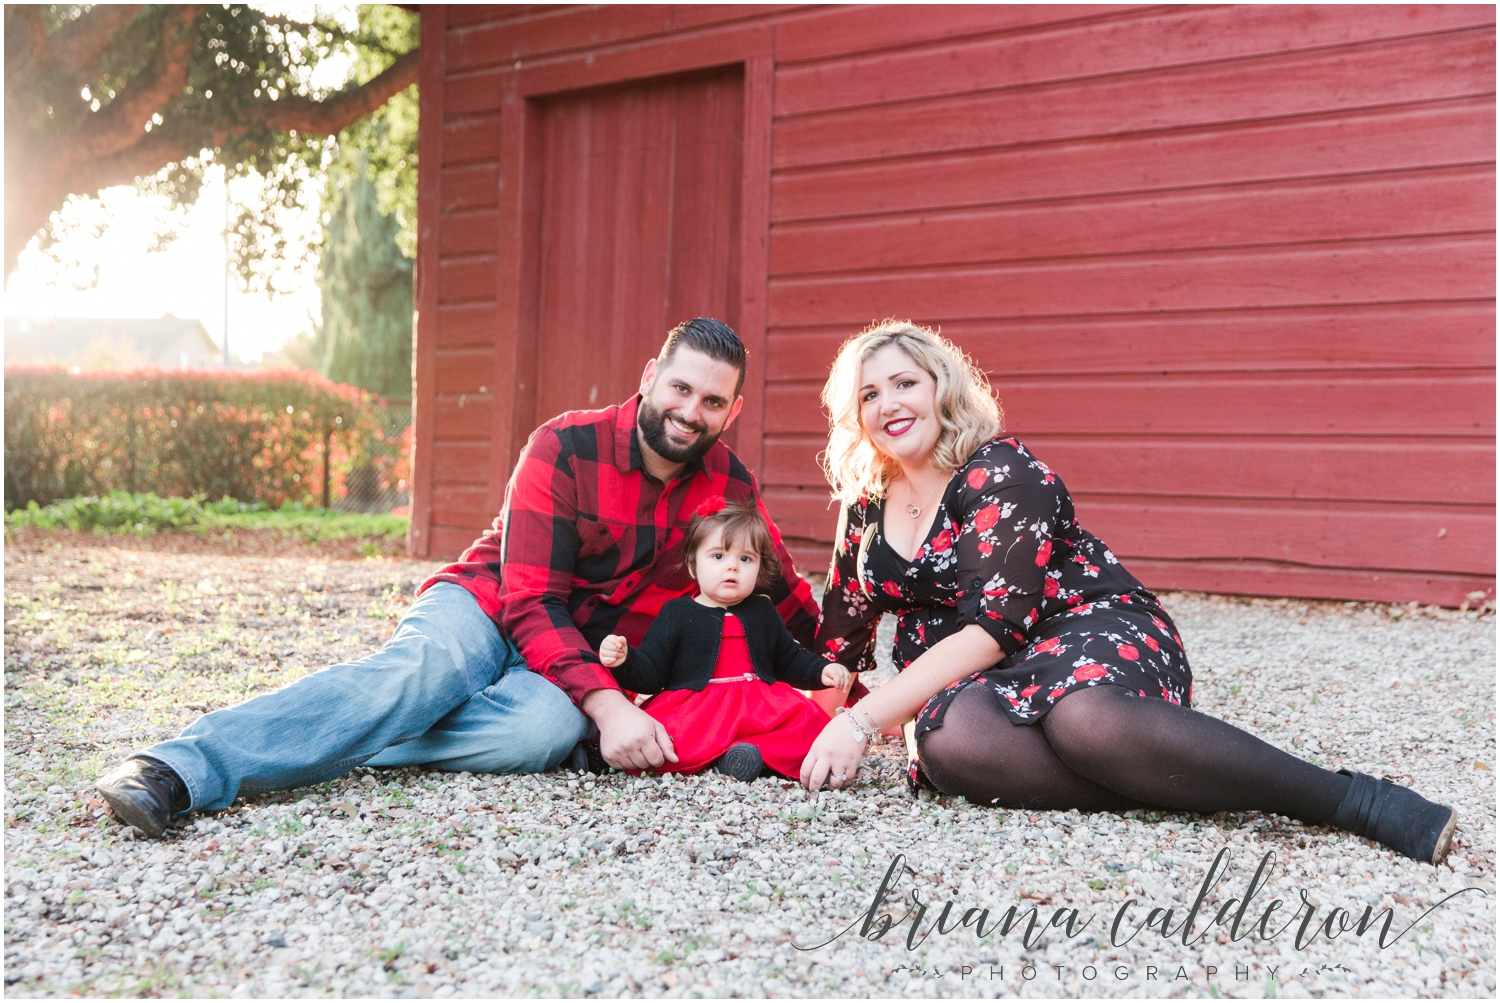 Family pictures at Shinn Historical Park in Fremont by Briana Calderon Photography_1207.jpg